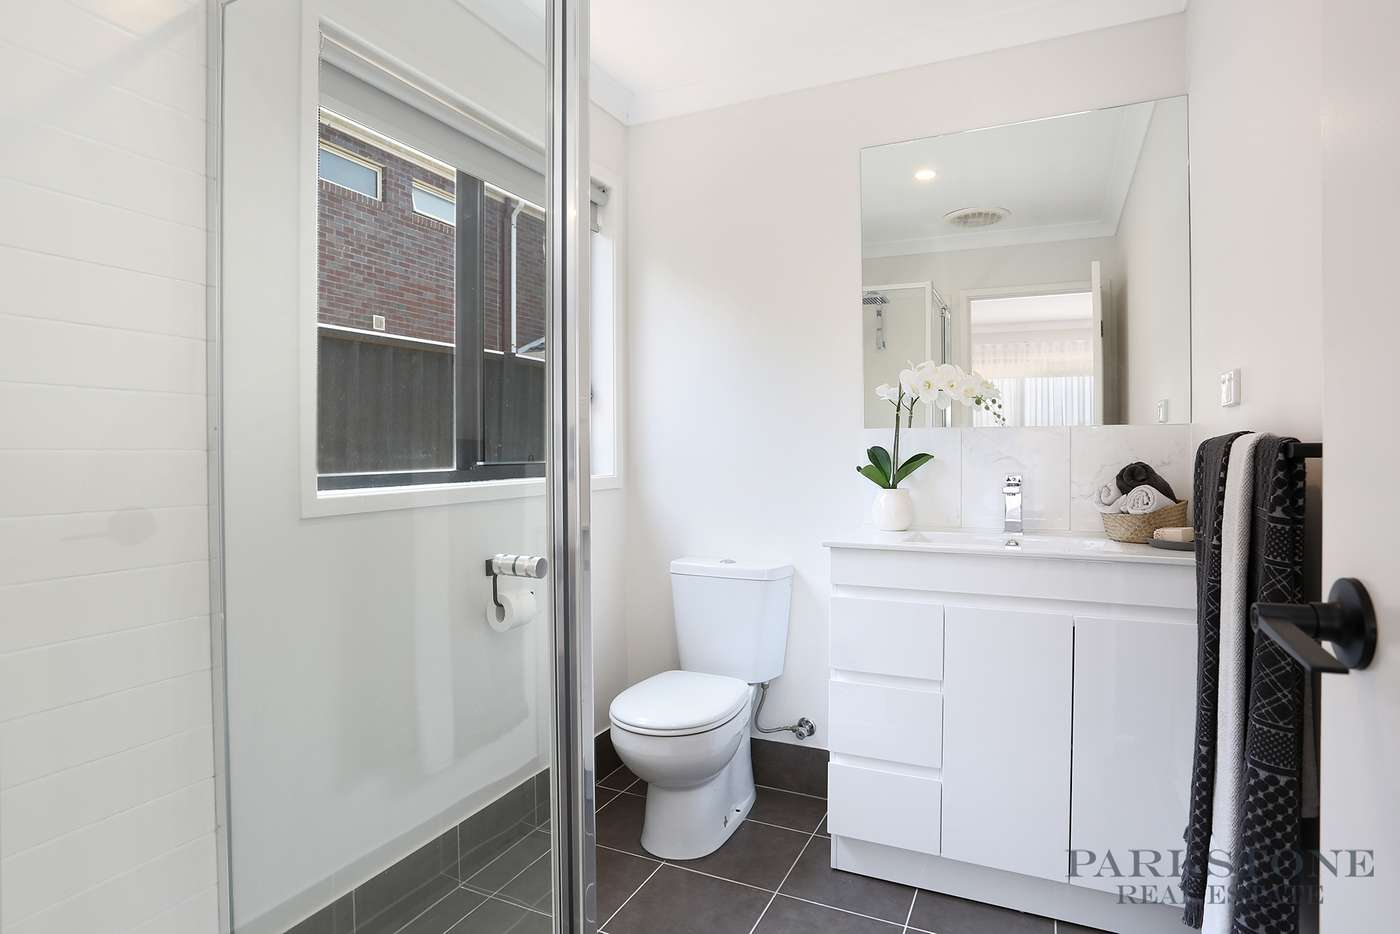 Seventh view of Homely house listing, 3 Lysterfield Walk, Manor Lakes VIC 3024